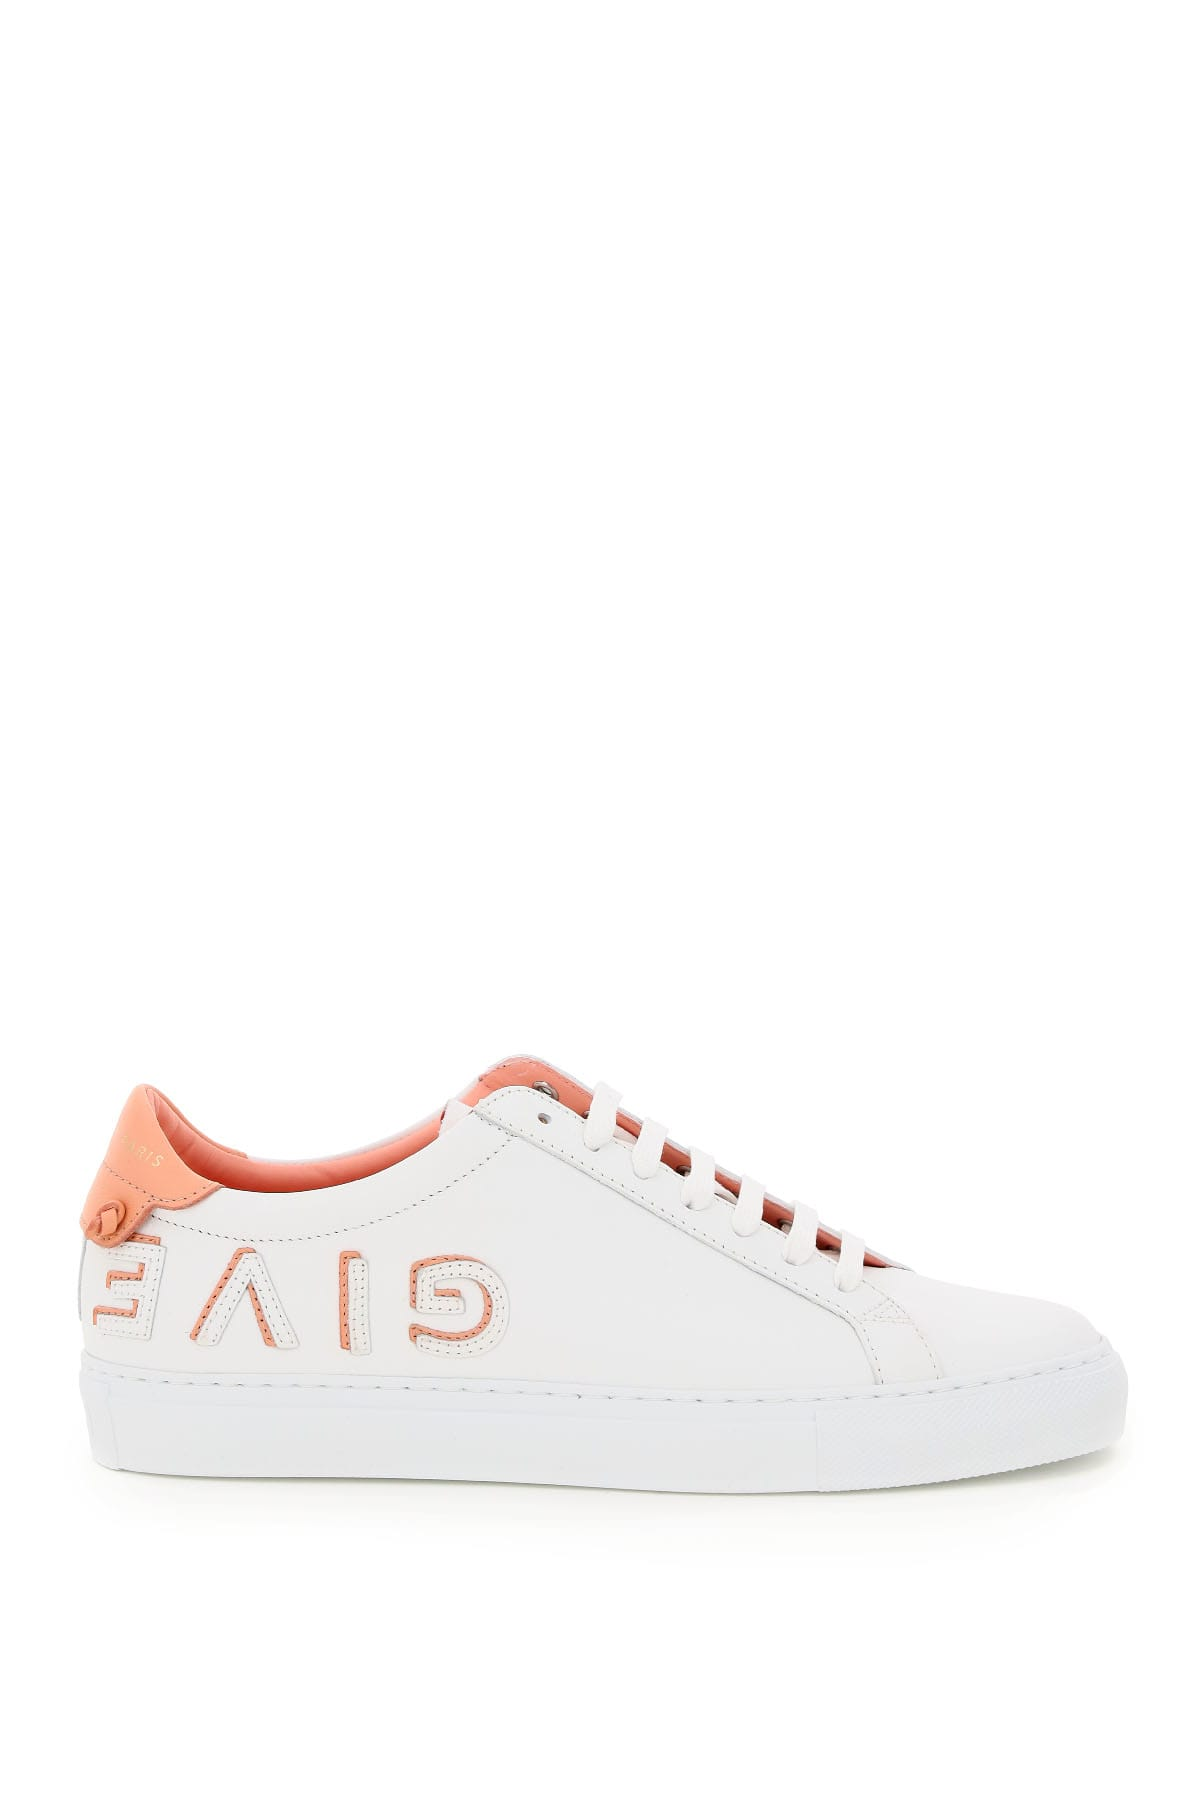 Givenchy Shoes URBAN STREET LEATHER SNEAKERS REVERSO LOGO